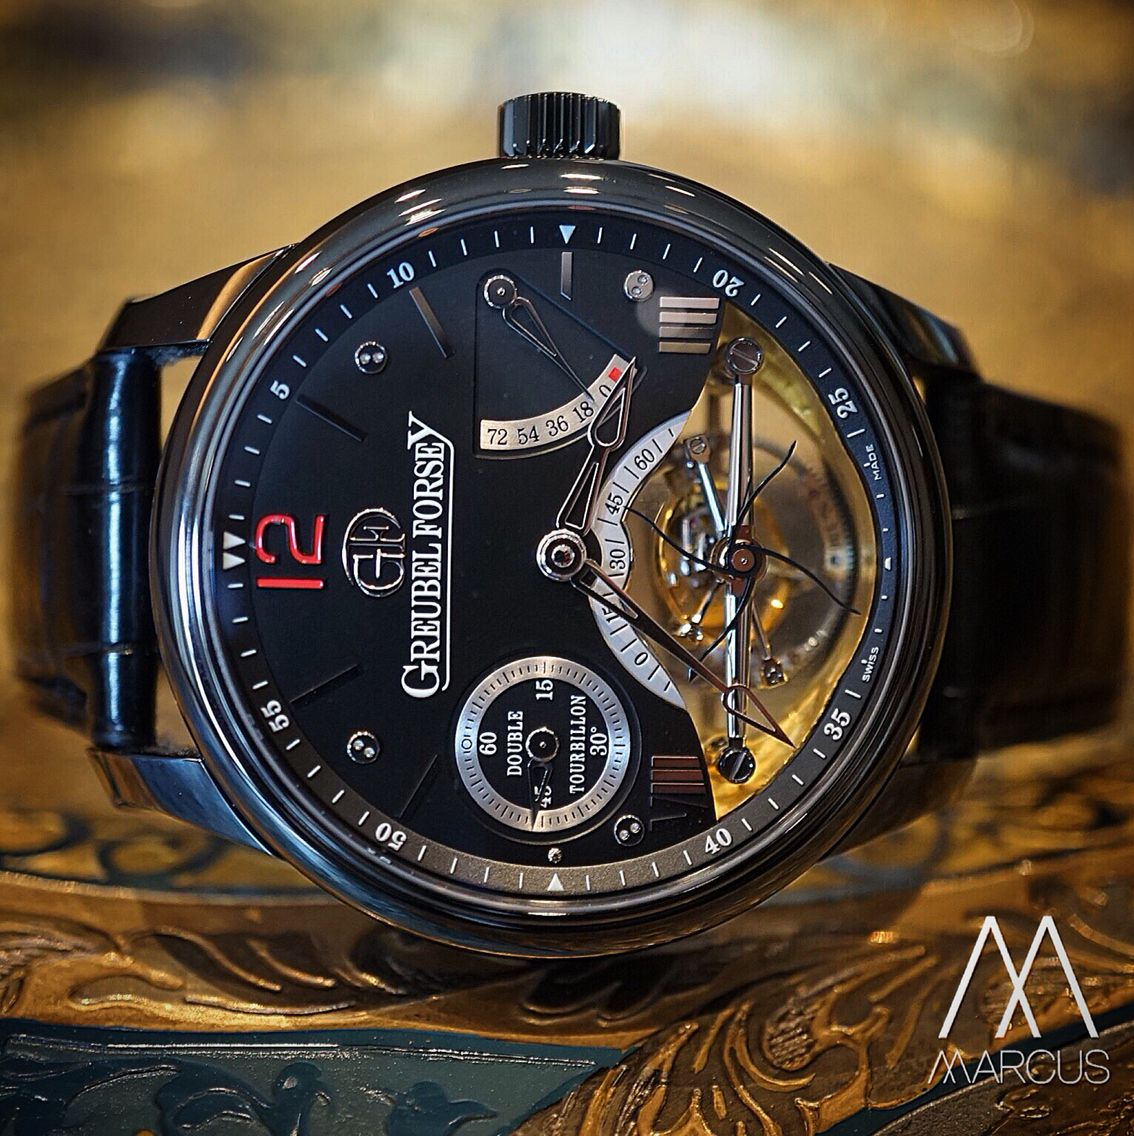 Is that a vision I see before me? The unique Greubel Forsey double tourbillon Vision!